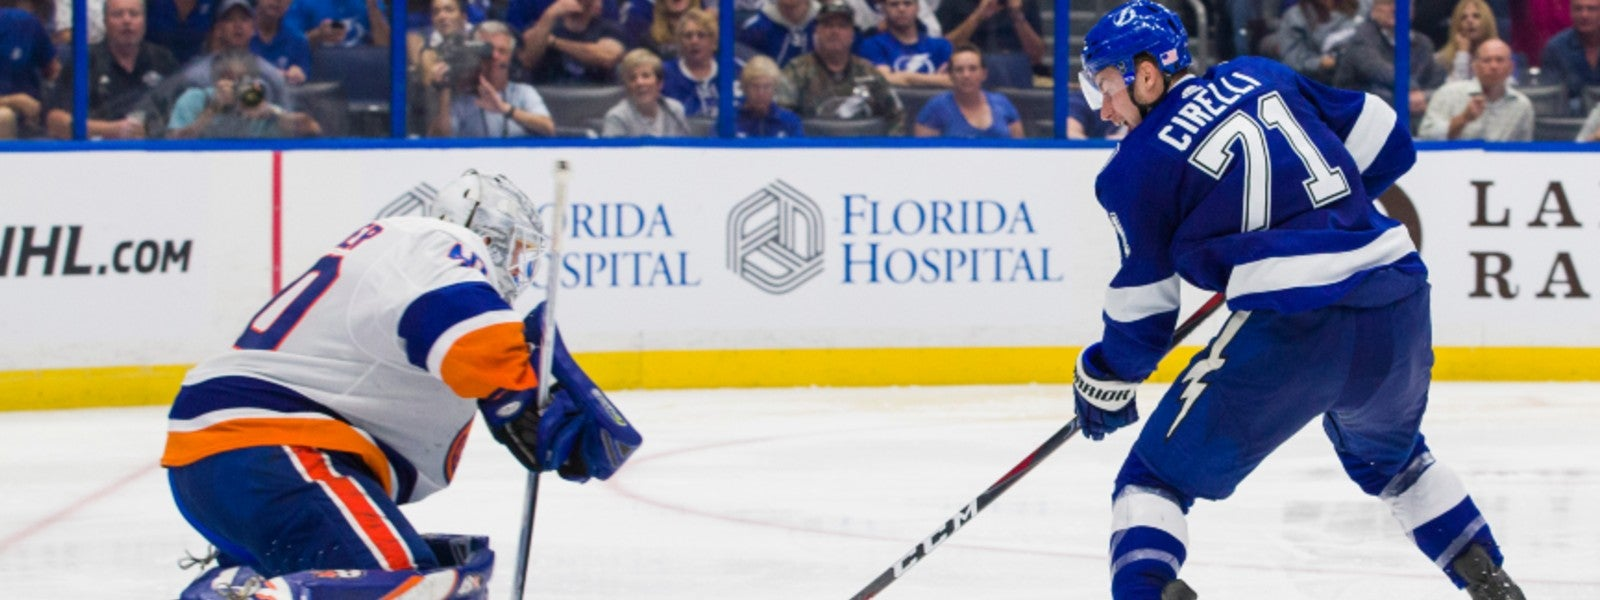 Tampa Bay Lightning vs. New York Islanders